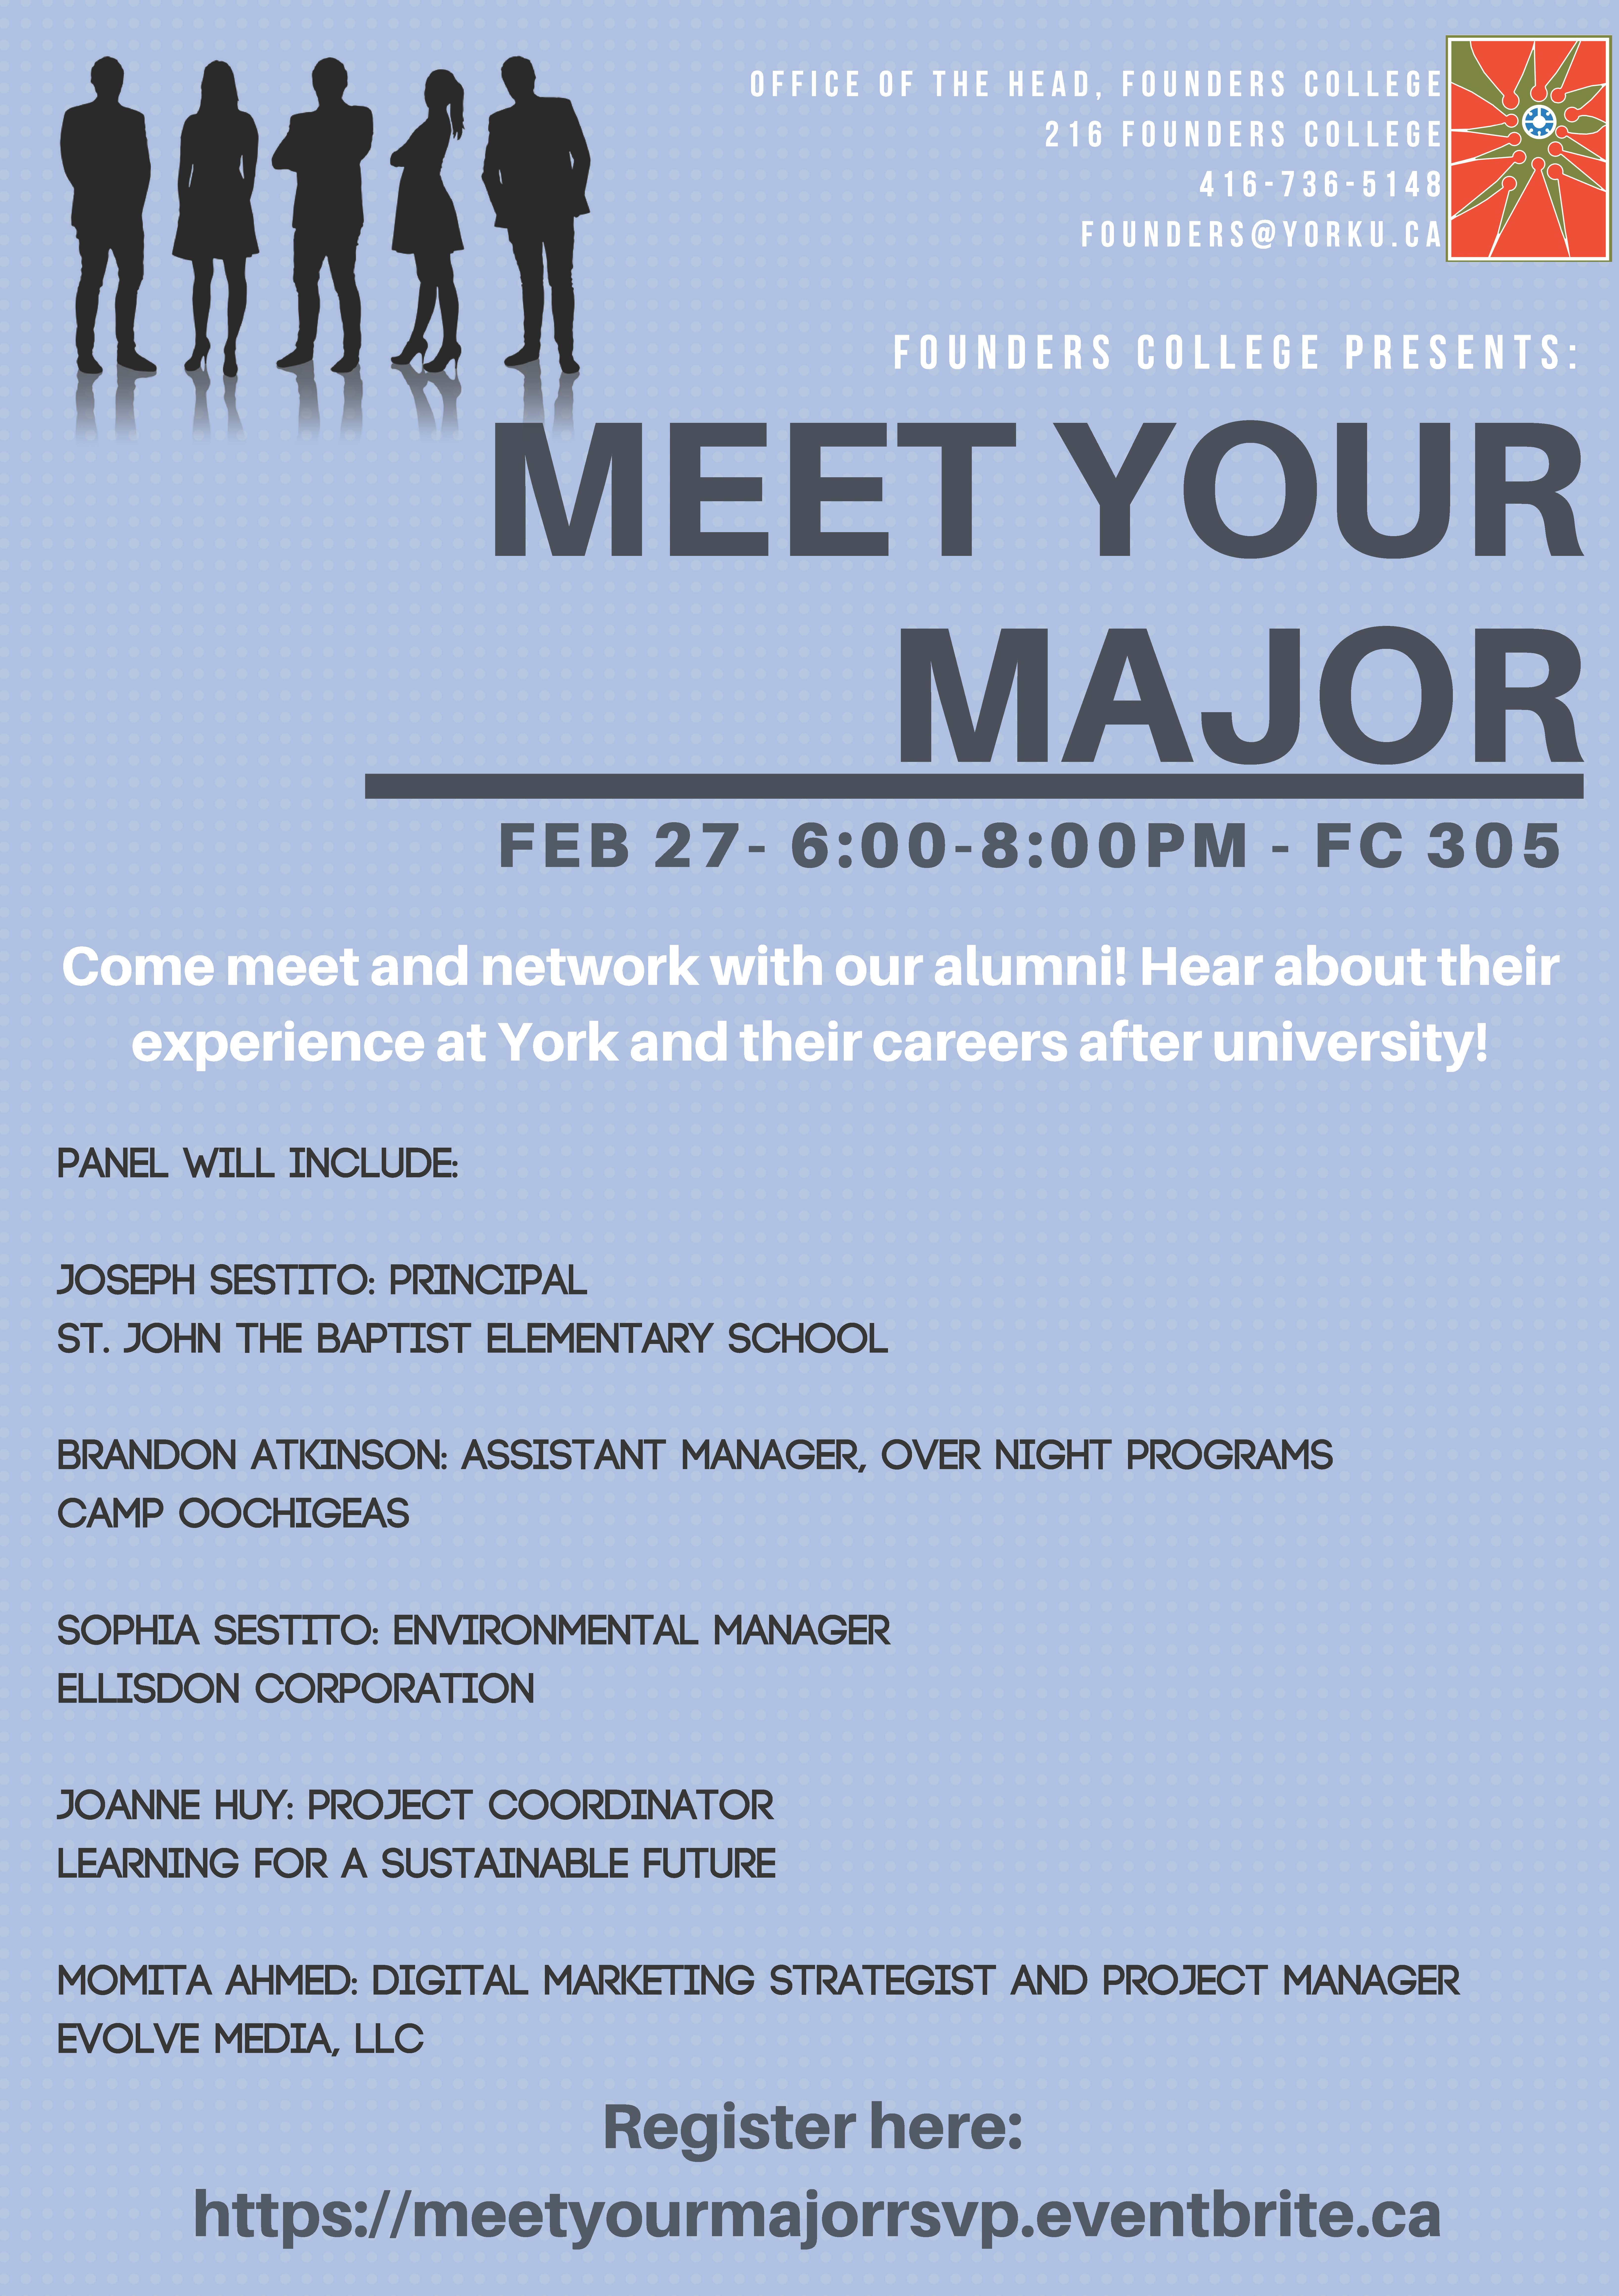 Meet Your Major Poster with Panelists